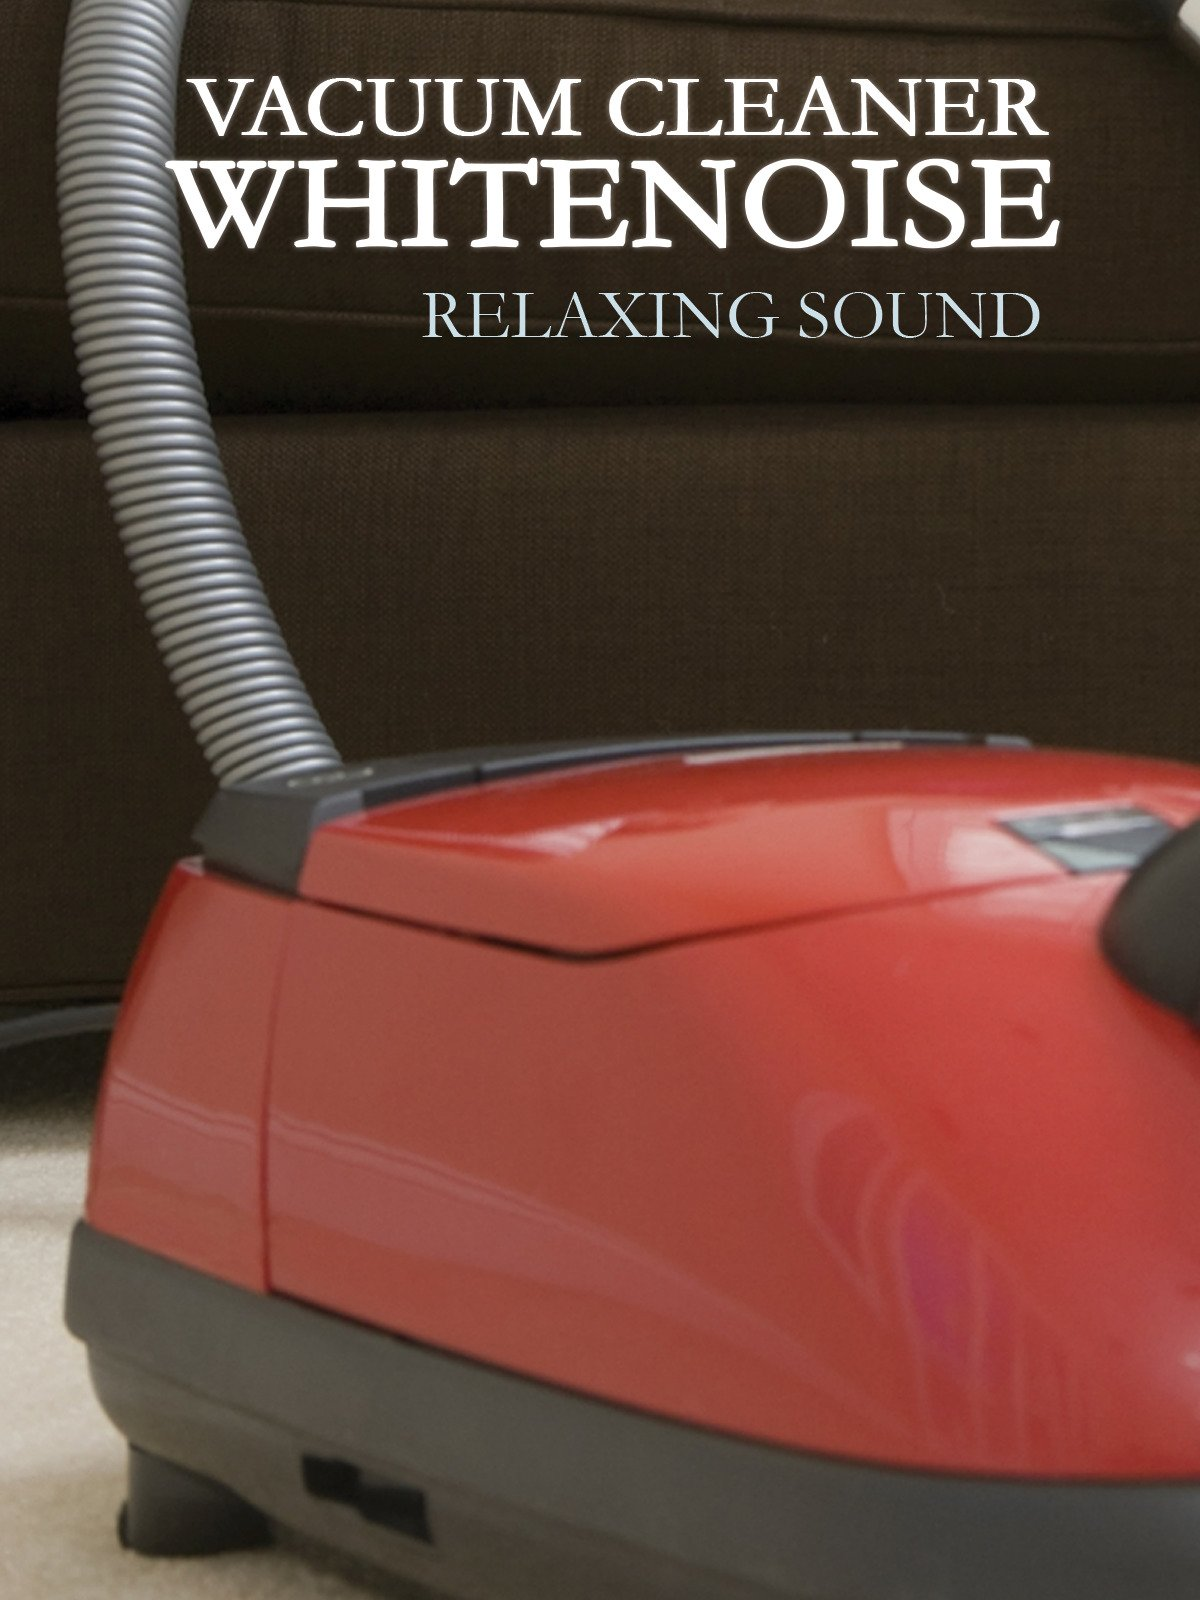 Vacuum Cleaner Whitenoise Relaxing Sound